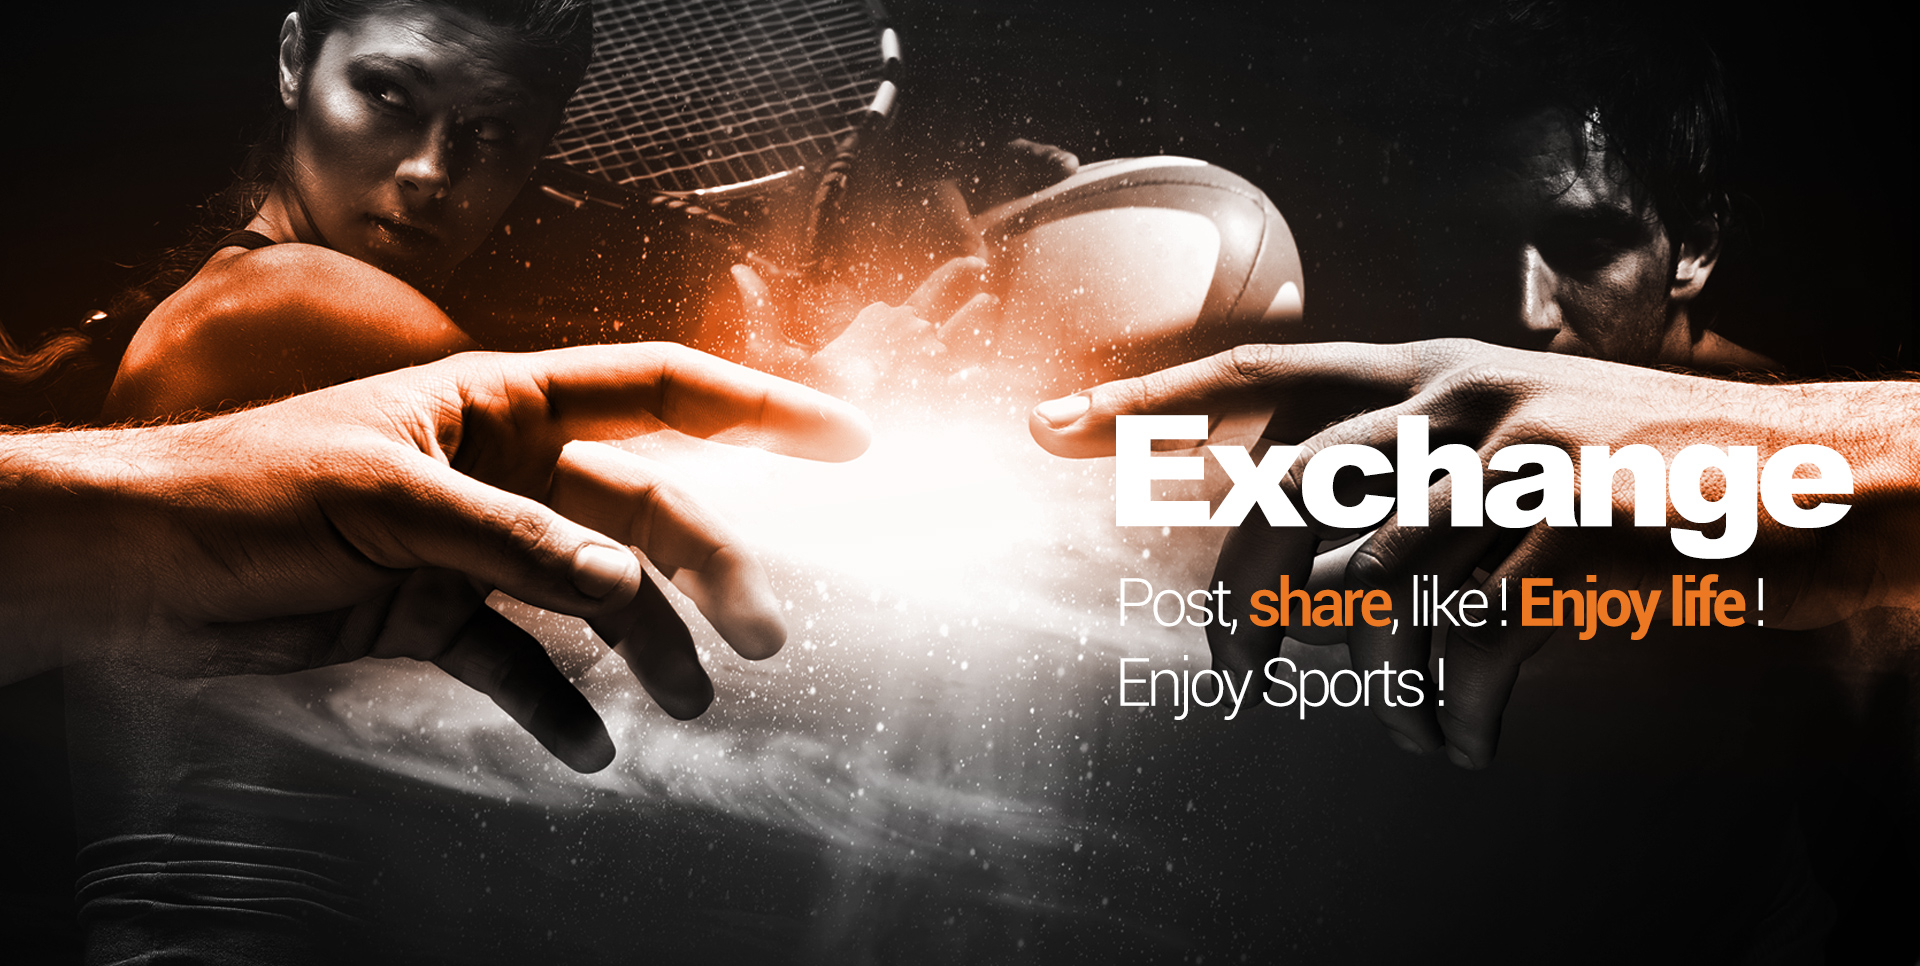 Post, share, like! Enjoy life! Enjoy Sports